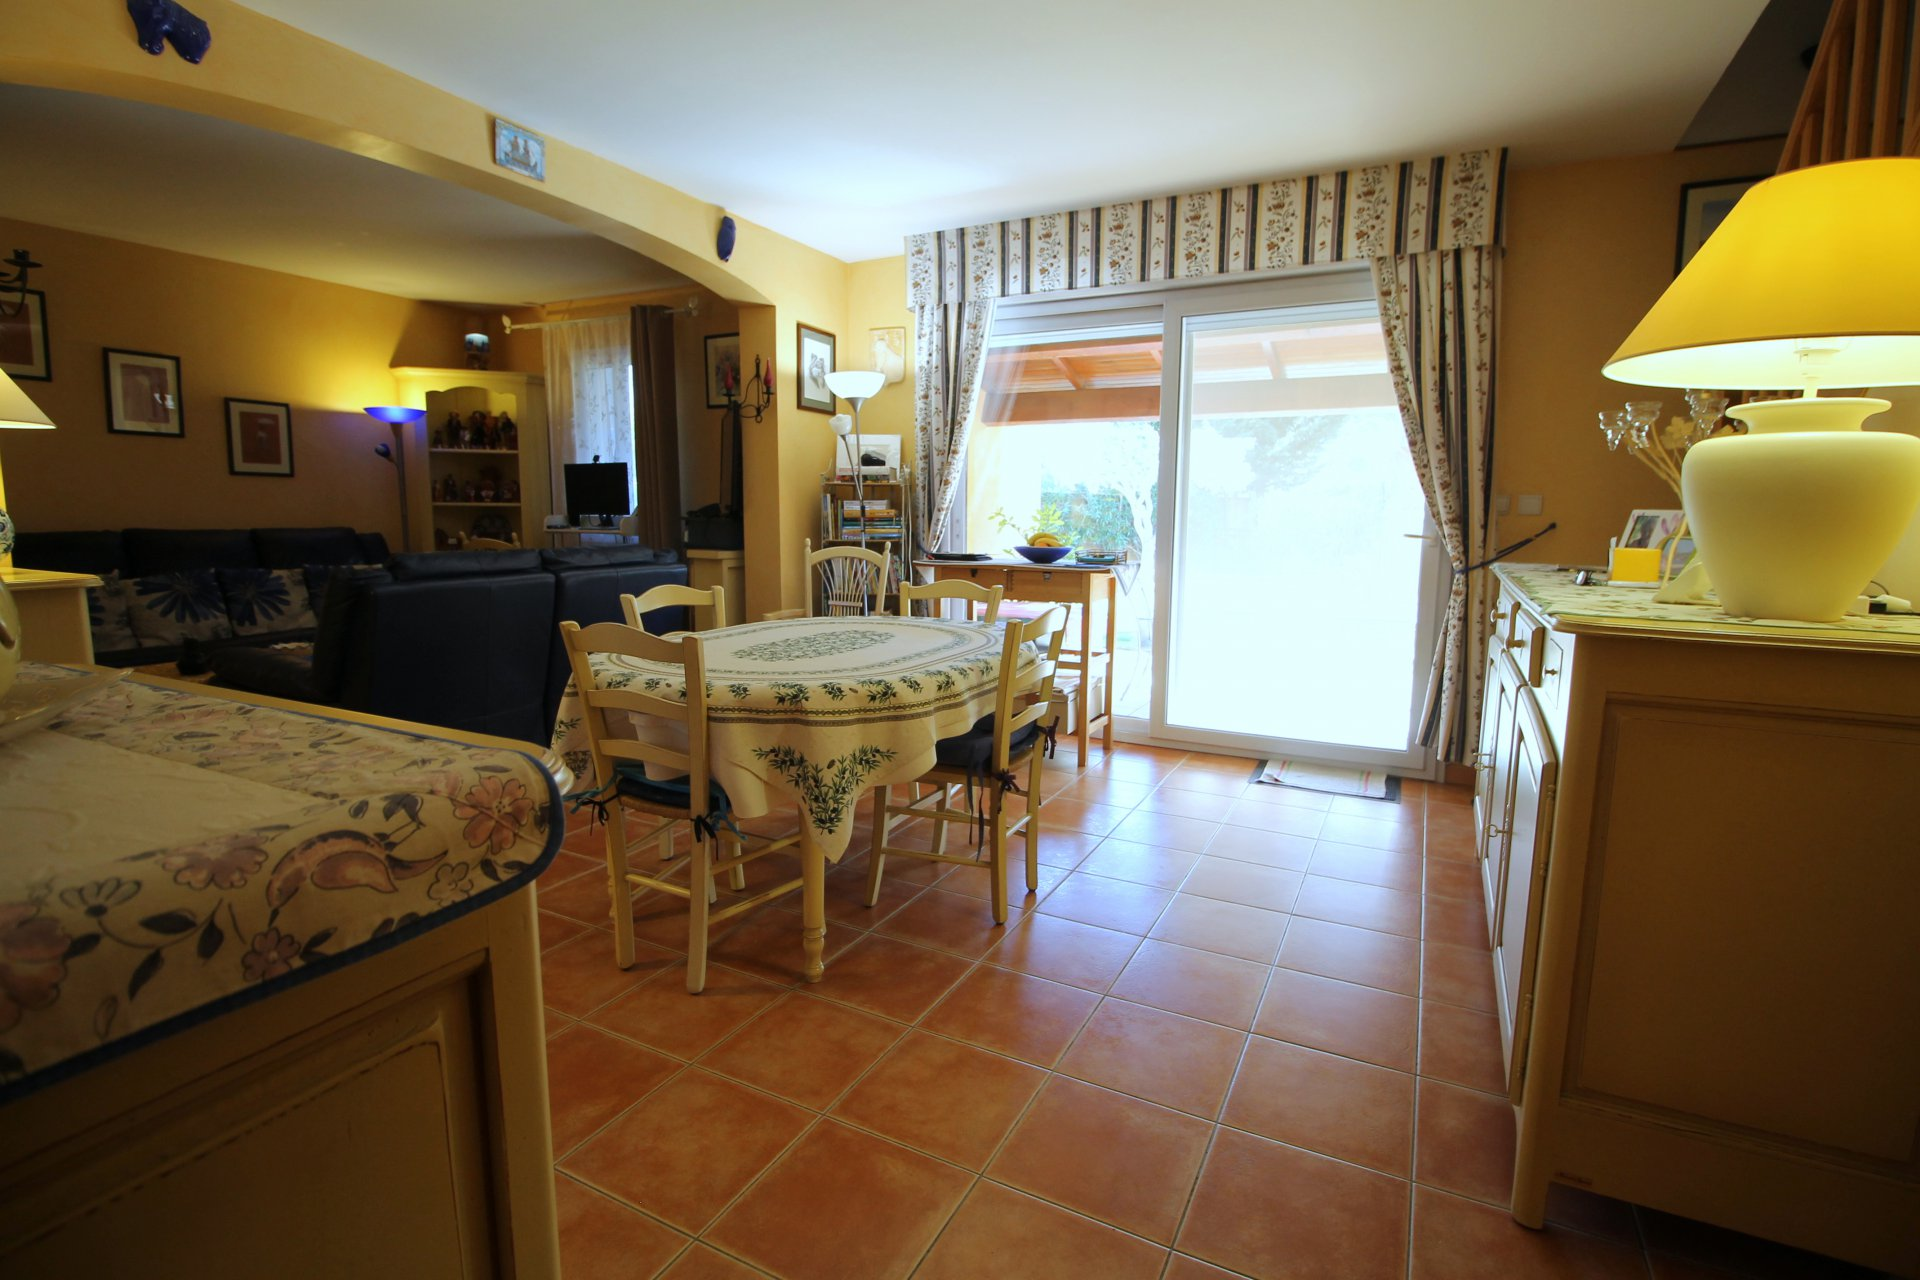 3 bedroom holiday home for sale in Arles and close to the beach